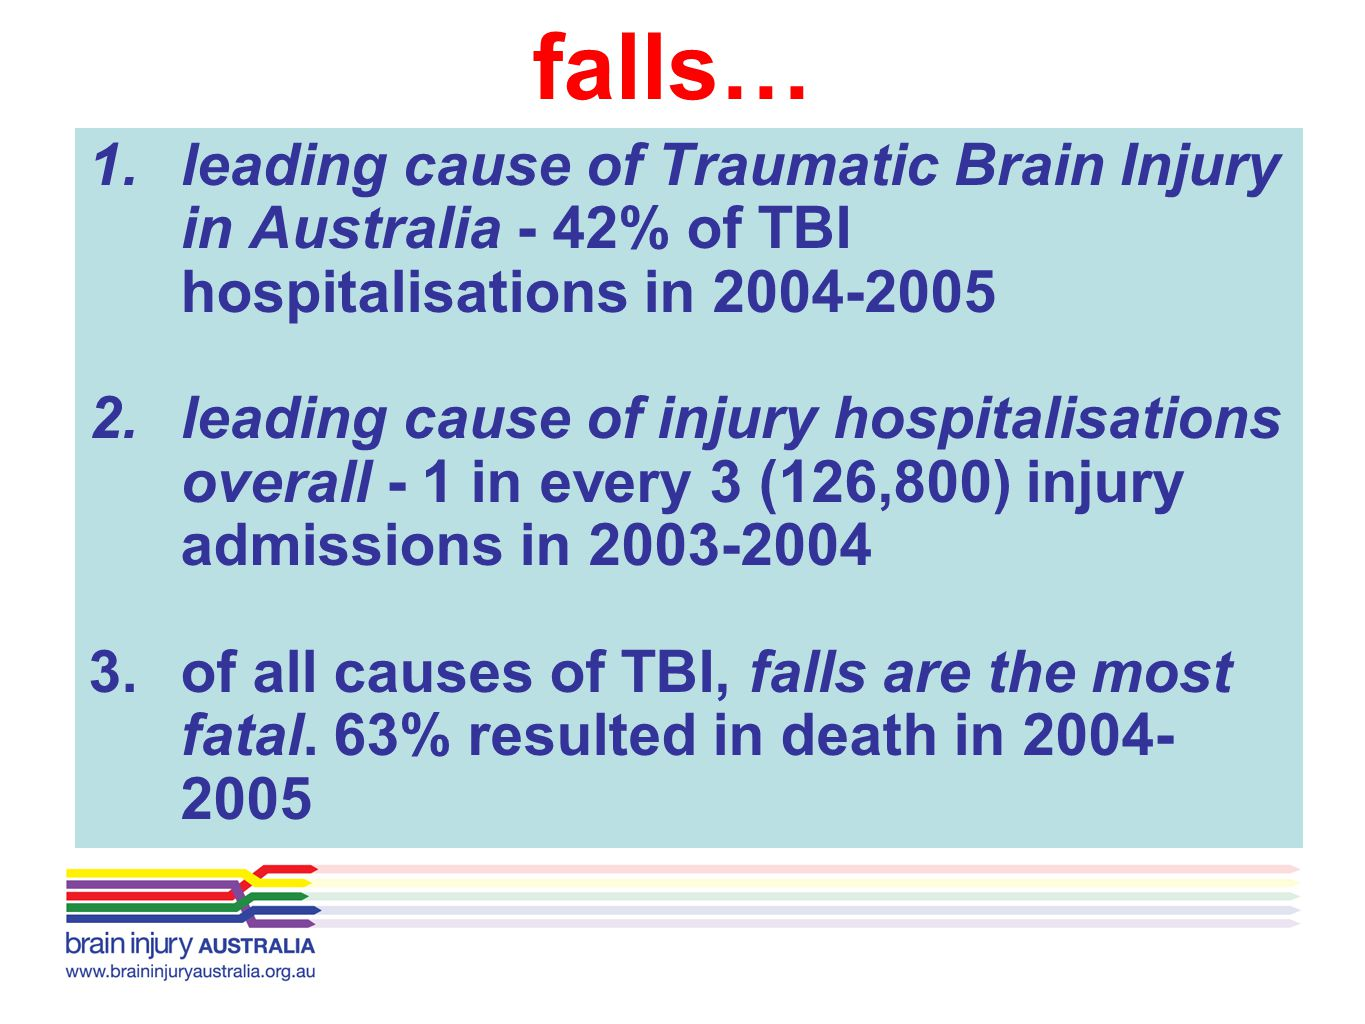 falls… leading cause of Traumatic Brain Injury in Australia - 42% of TBI hospitalisations in 2004-2005.